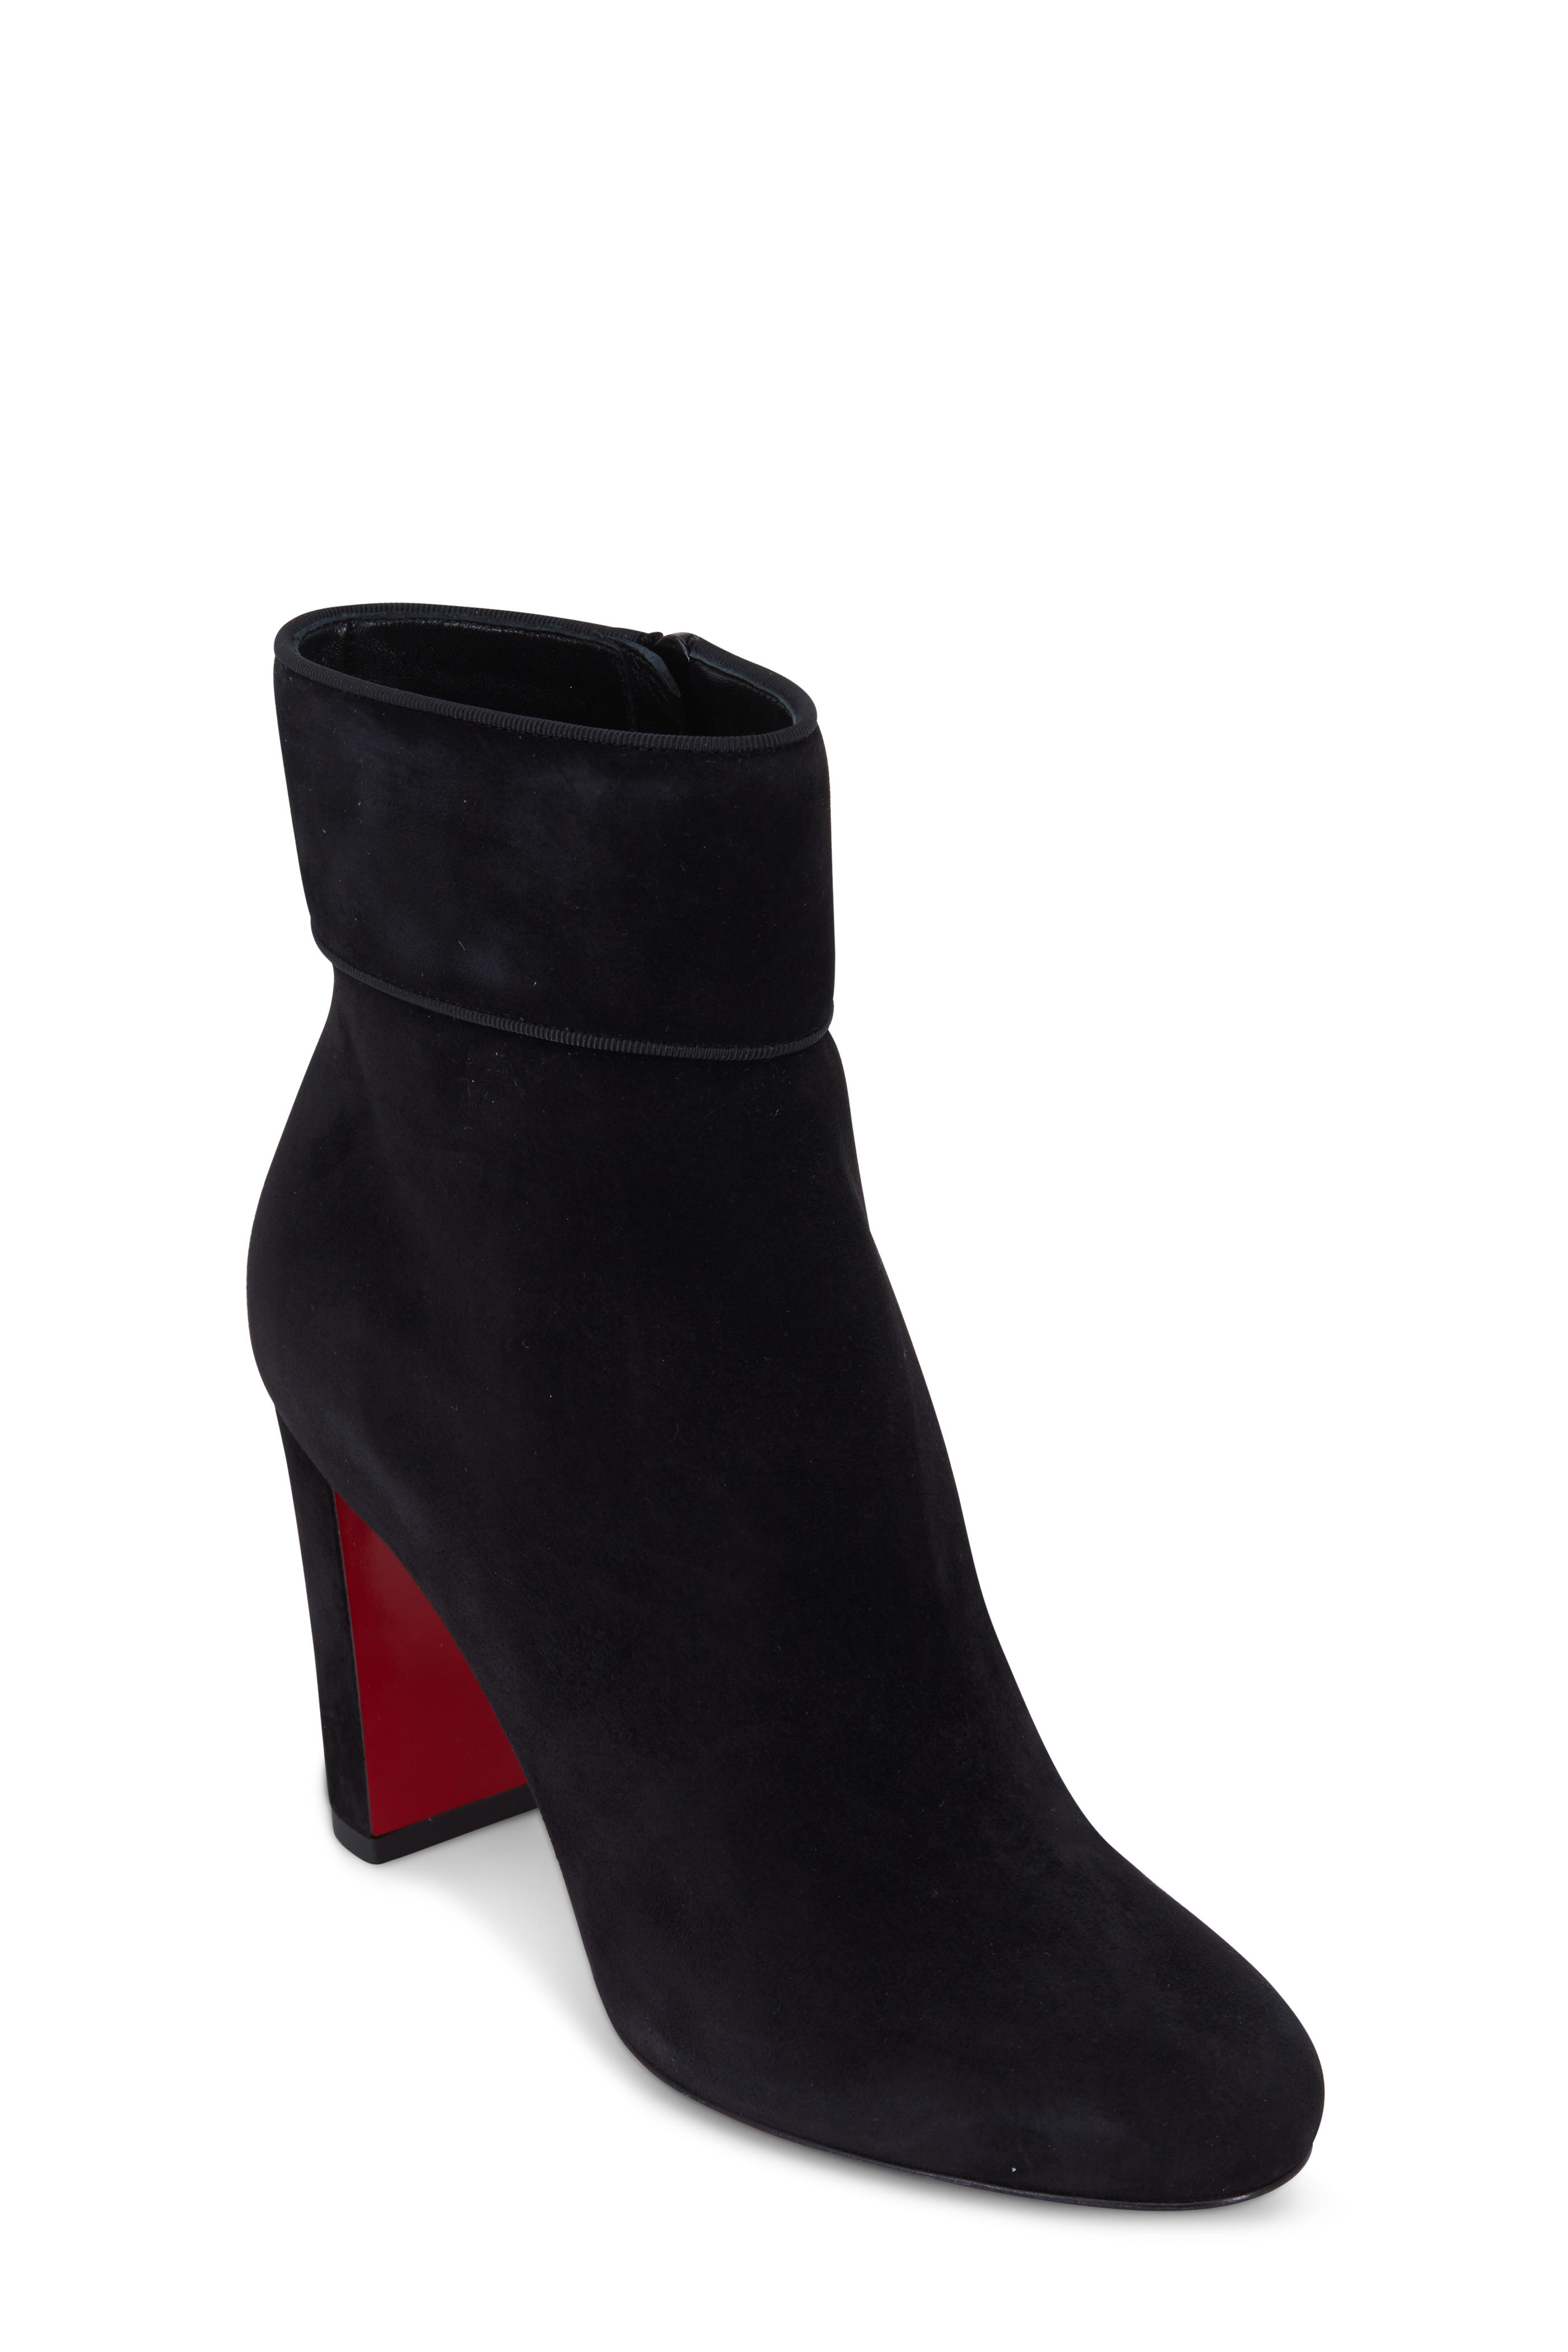 new arrival 2c321 27d57 Christian Louboutin - Moulamax Black Suede Ankle Boot, 85mm ...